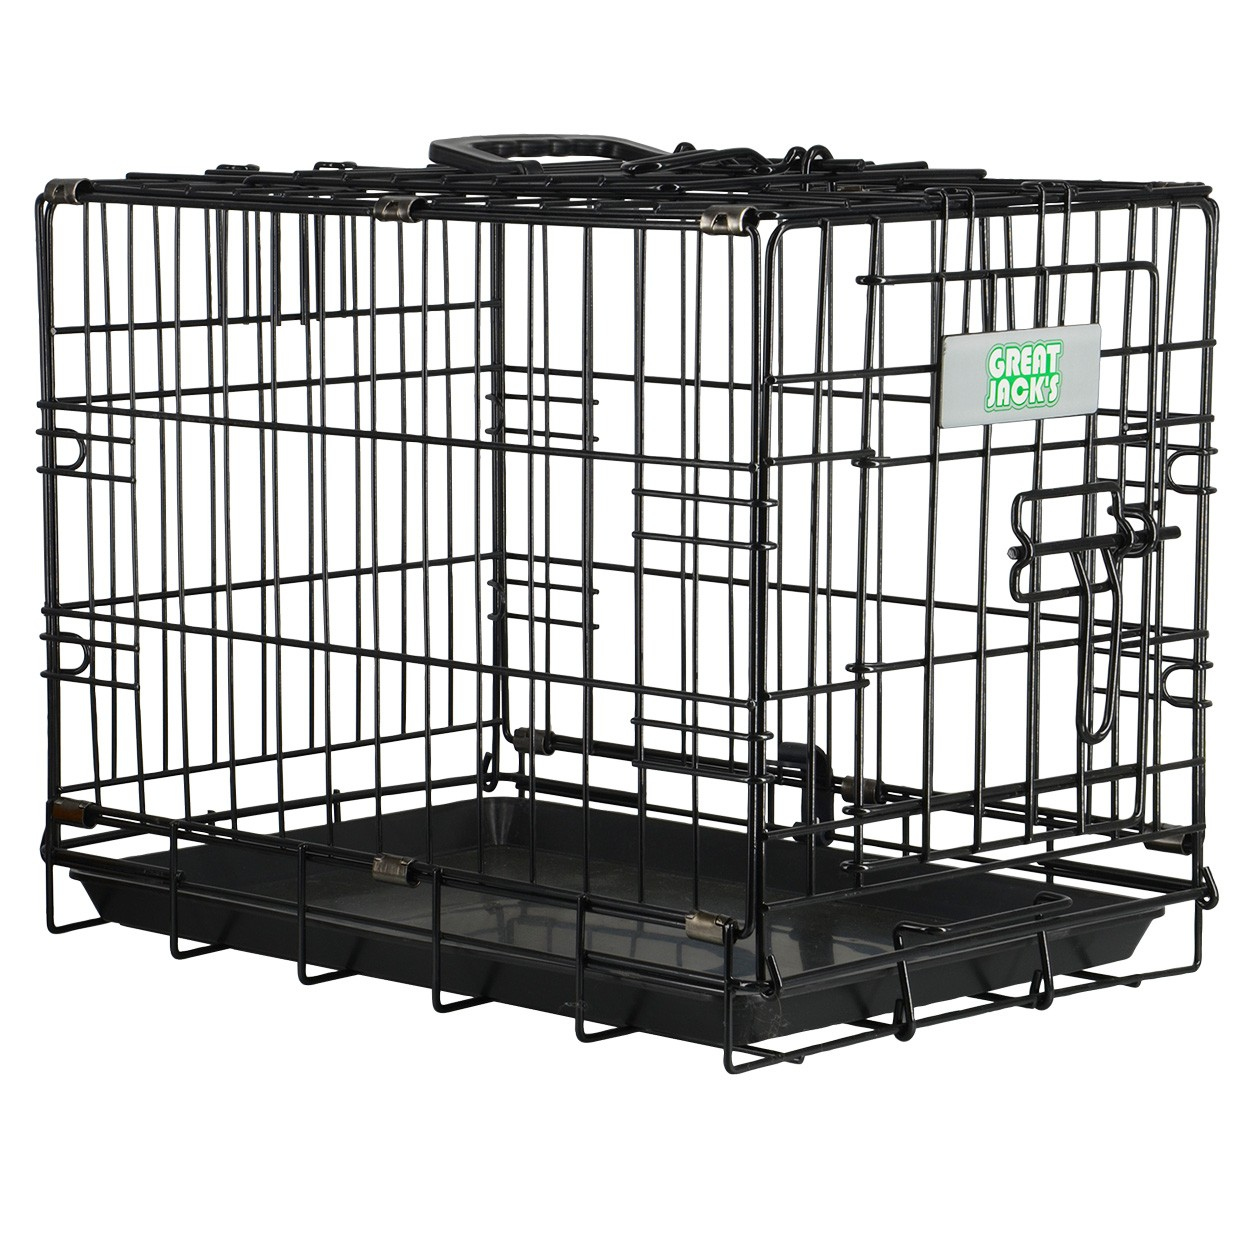 Great Jack\'s Deluxe Wire Crates